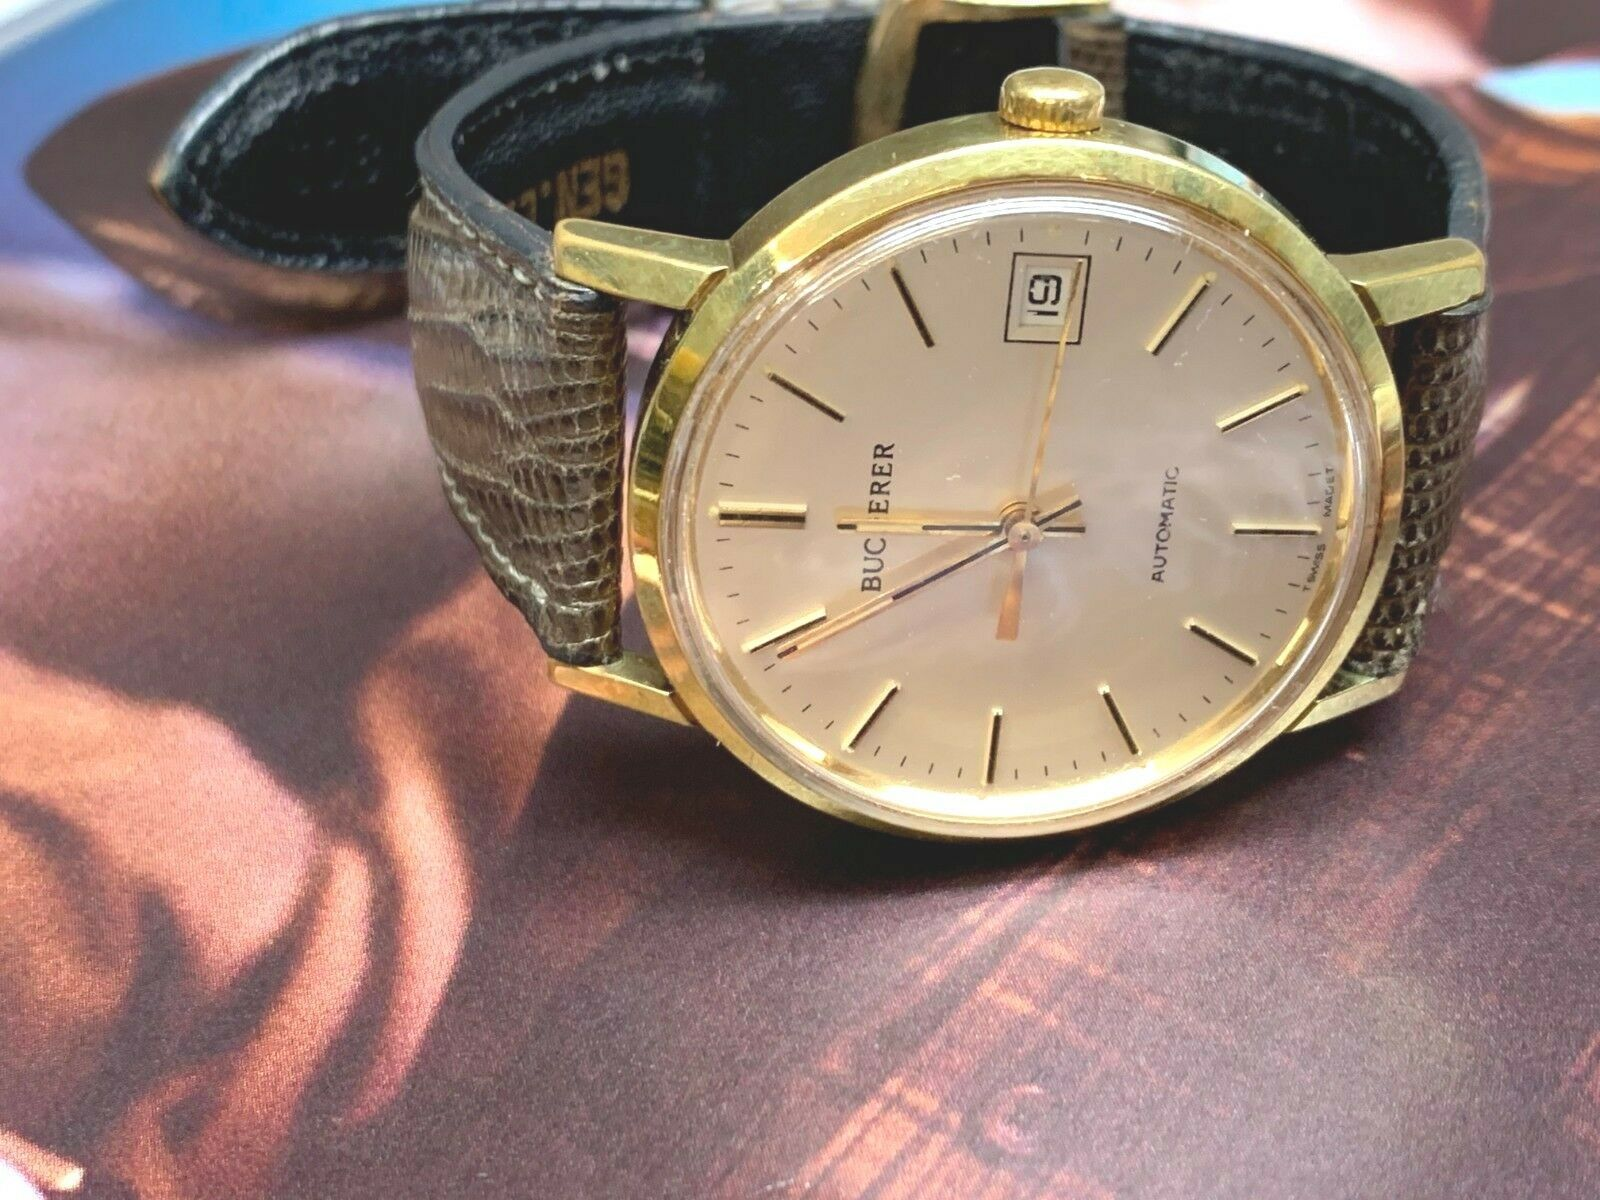 BUCHERER SWISS AUTOMATIC 25 JEWEL DATE COMPLETE SERVICED NICE WATCH image 2